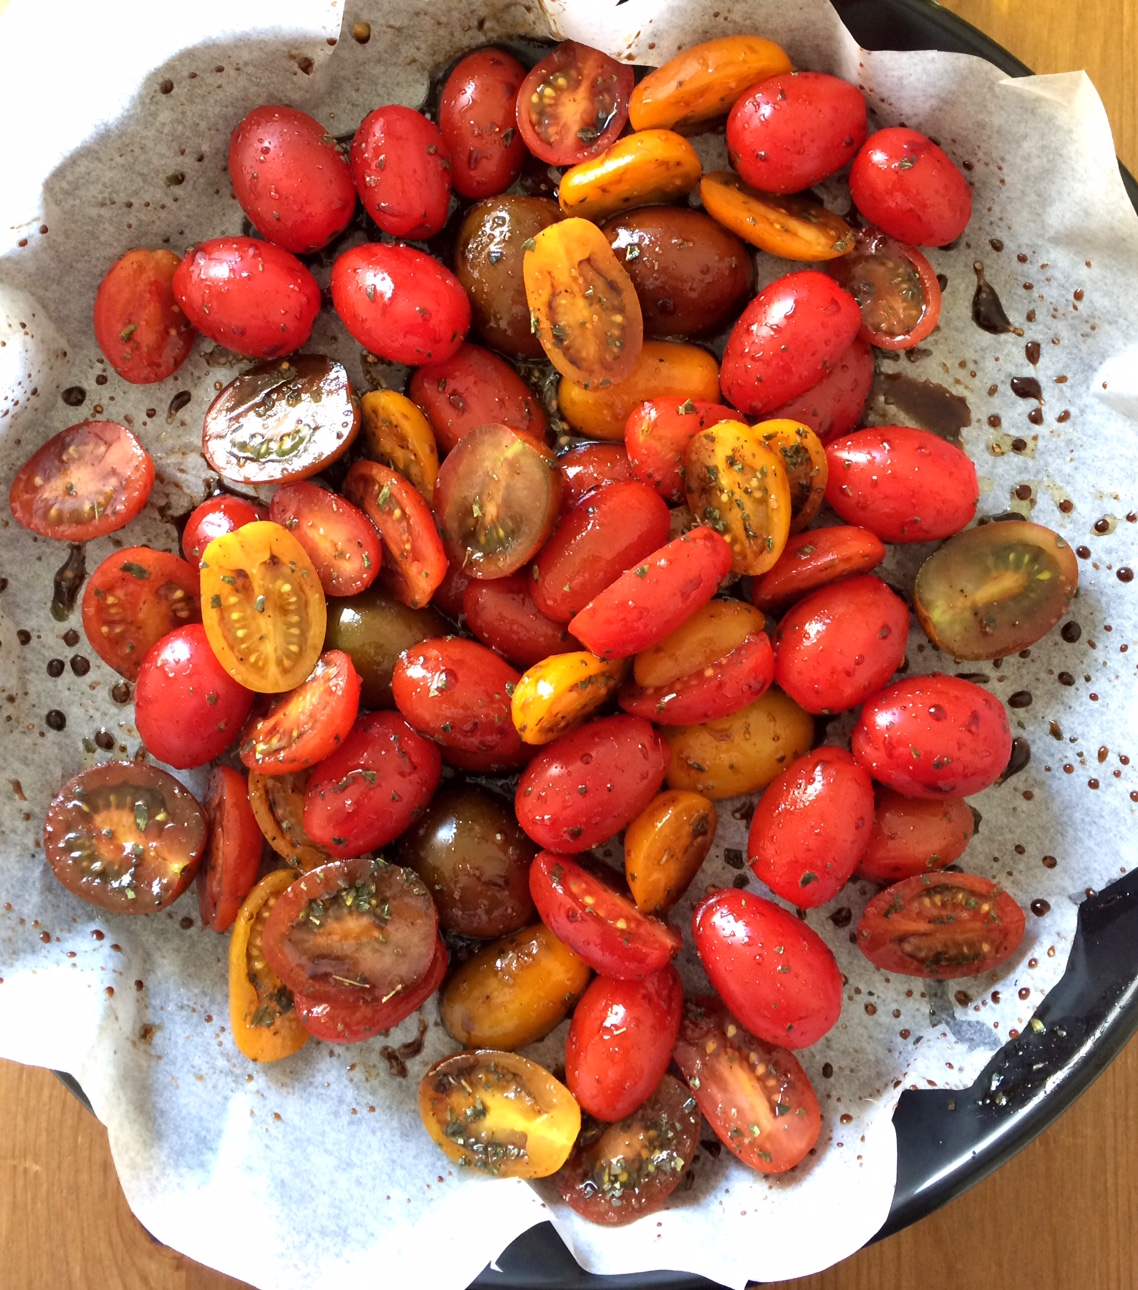 cherry tomatoes, ready to be reduced in the oven